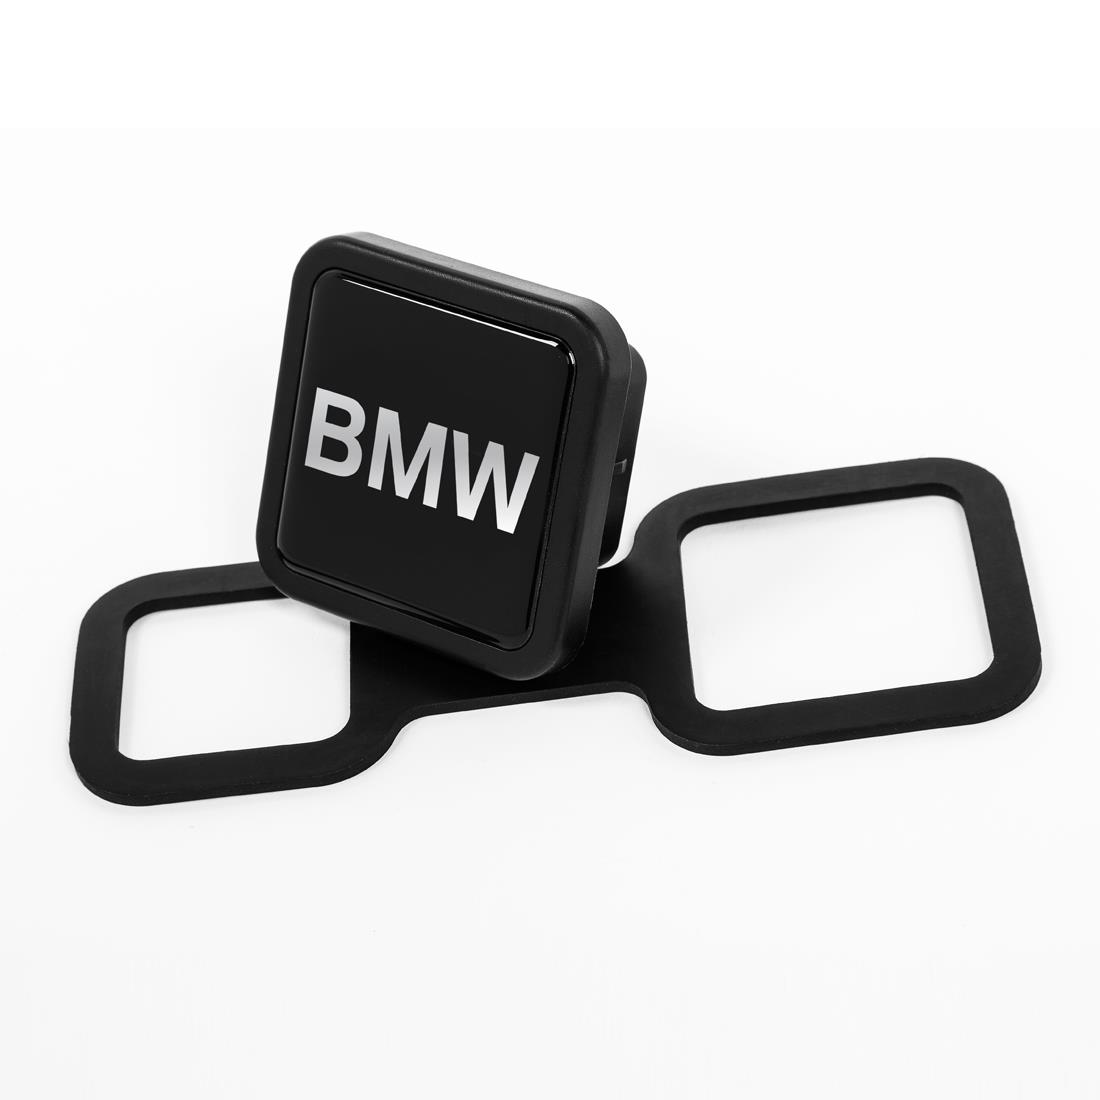 BMW 2-Inch Tow Hitch Plug